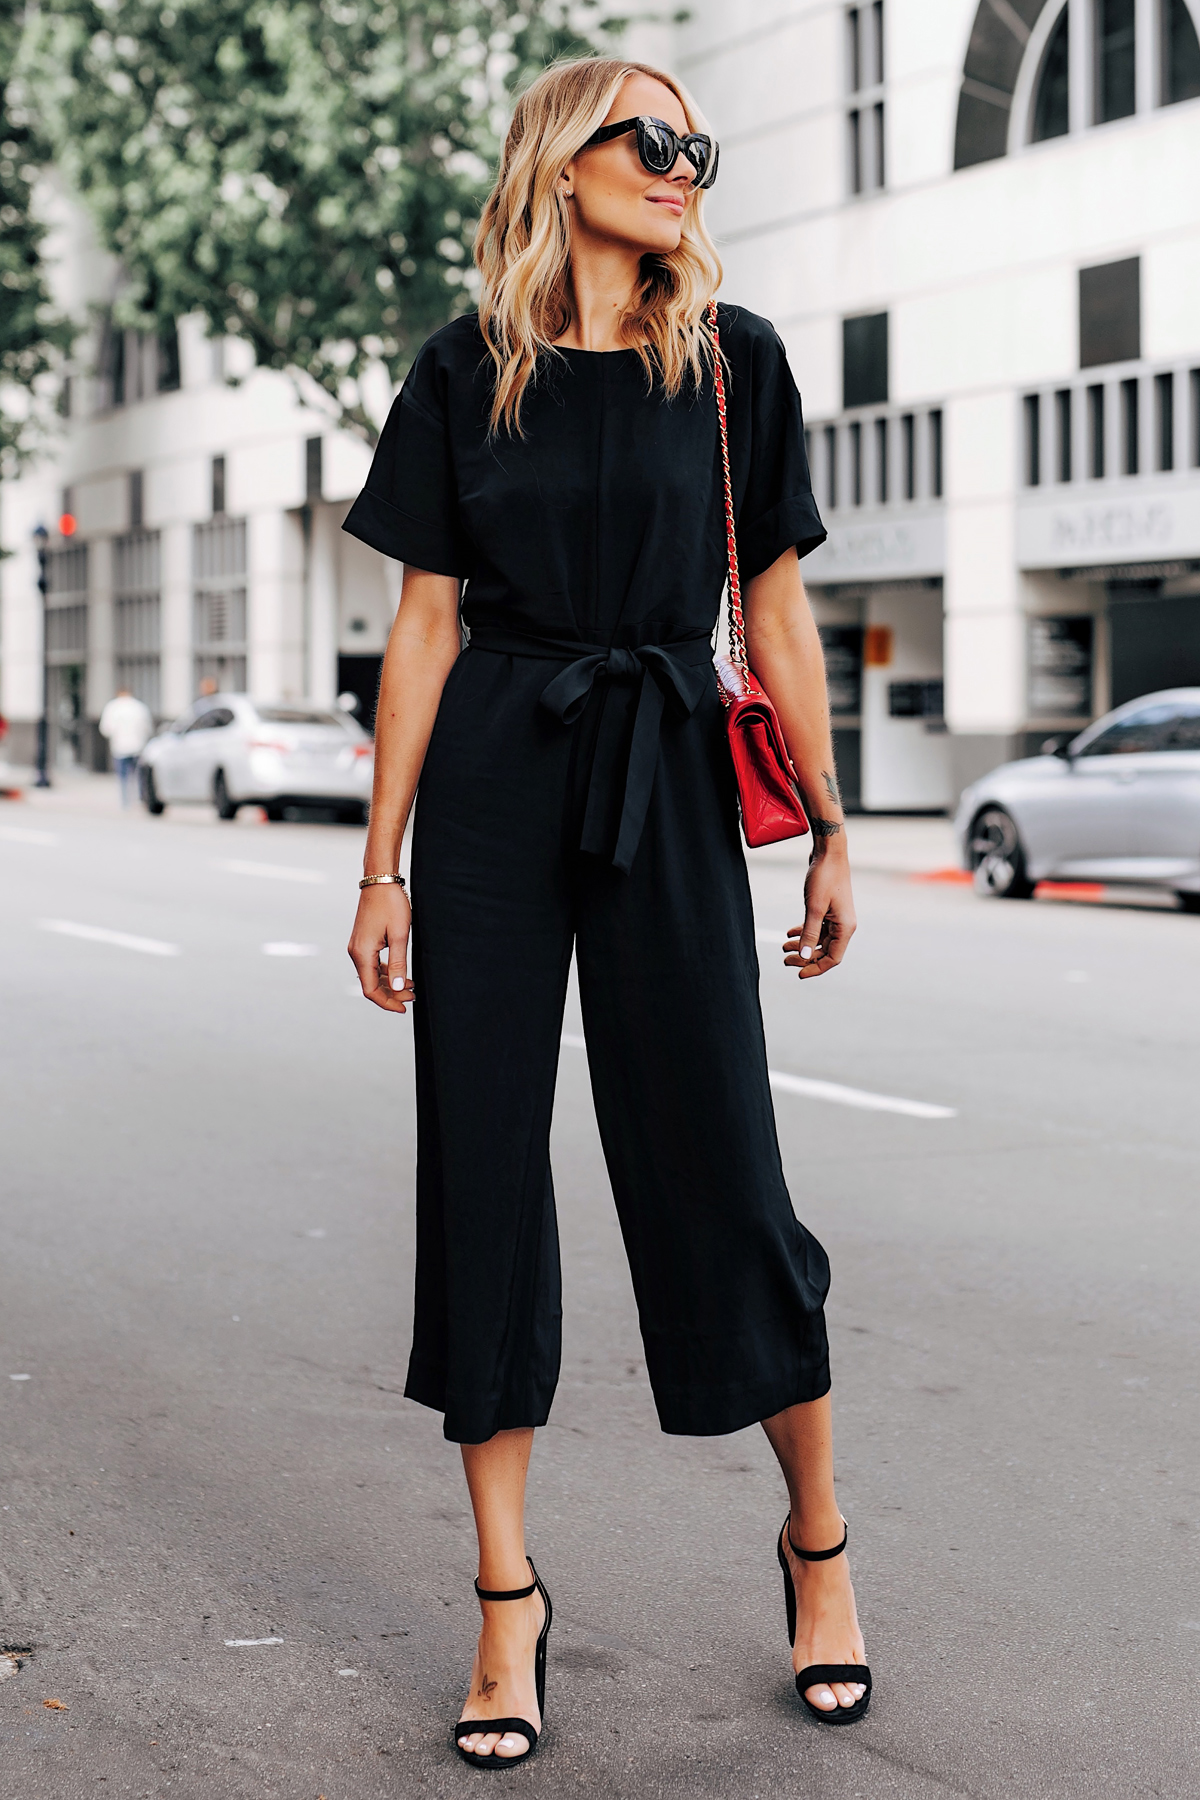 Blonde Woman Wearing Everlane Black Tie Waist Jumpsuit Chanel Red Handbag Black Heeled Sandals Fashion Jackson San Diego Fashion Blogger Street Style